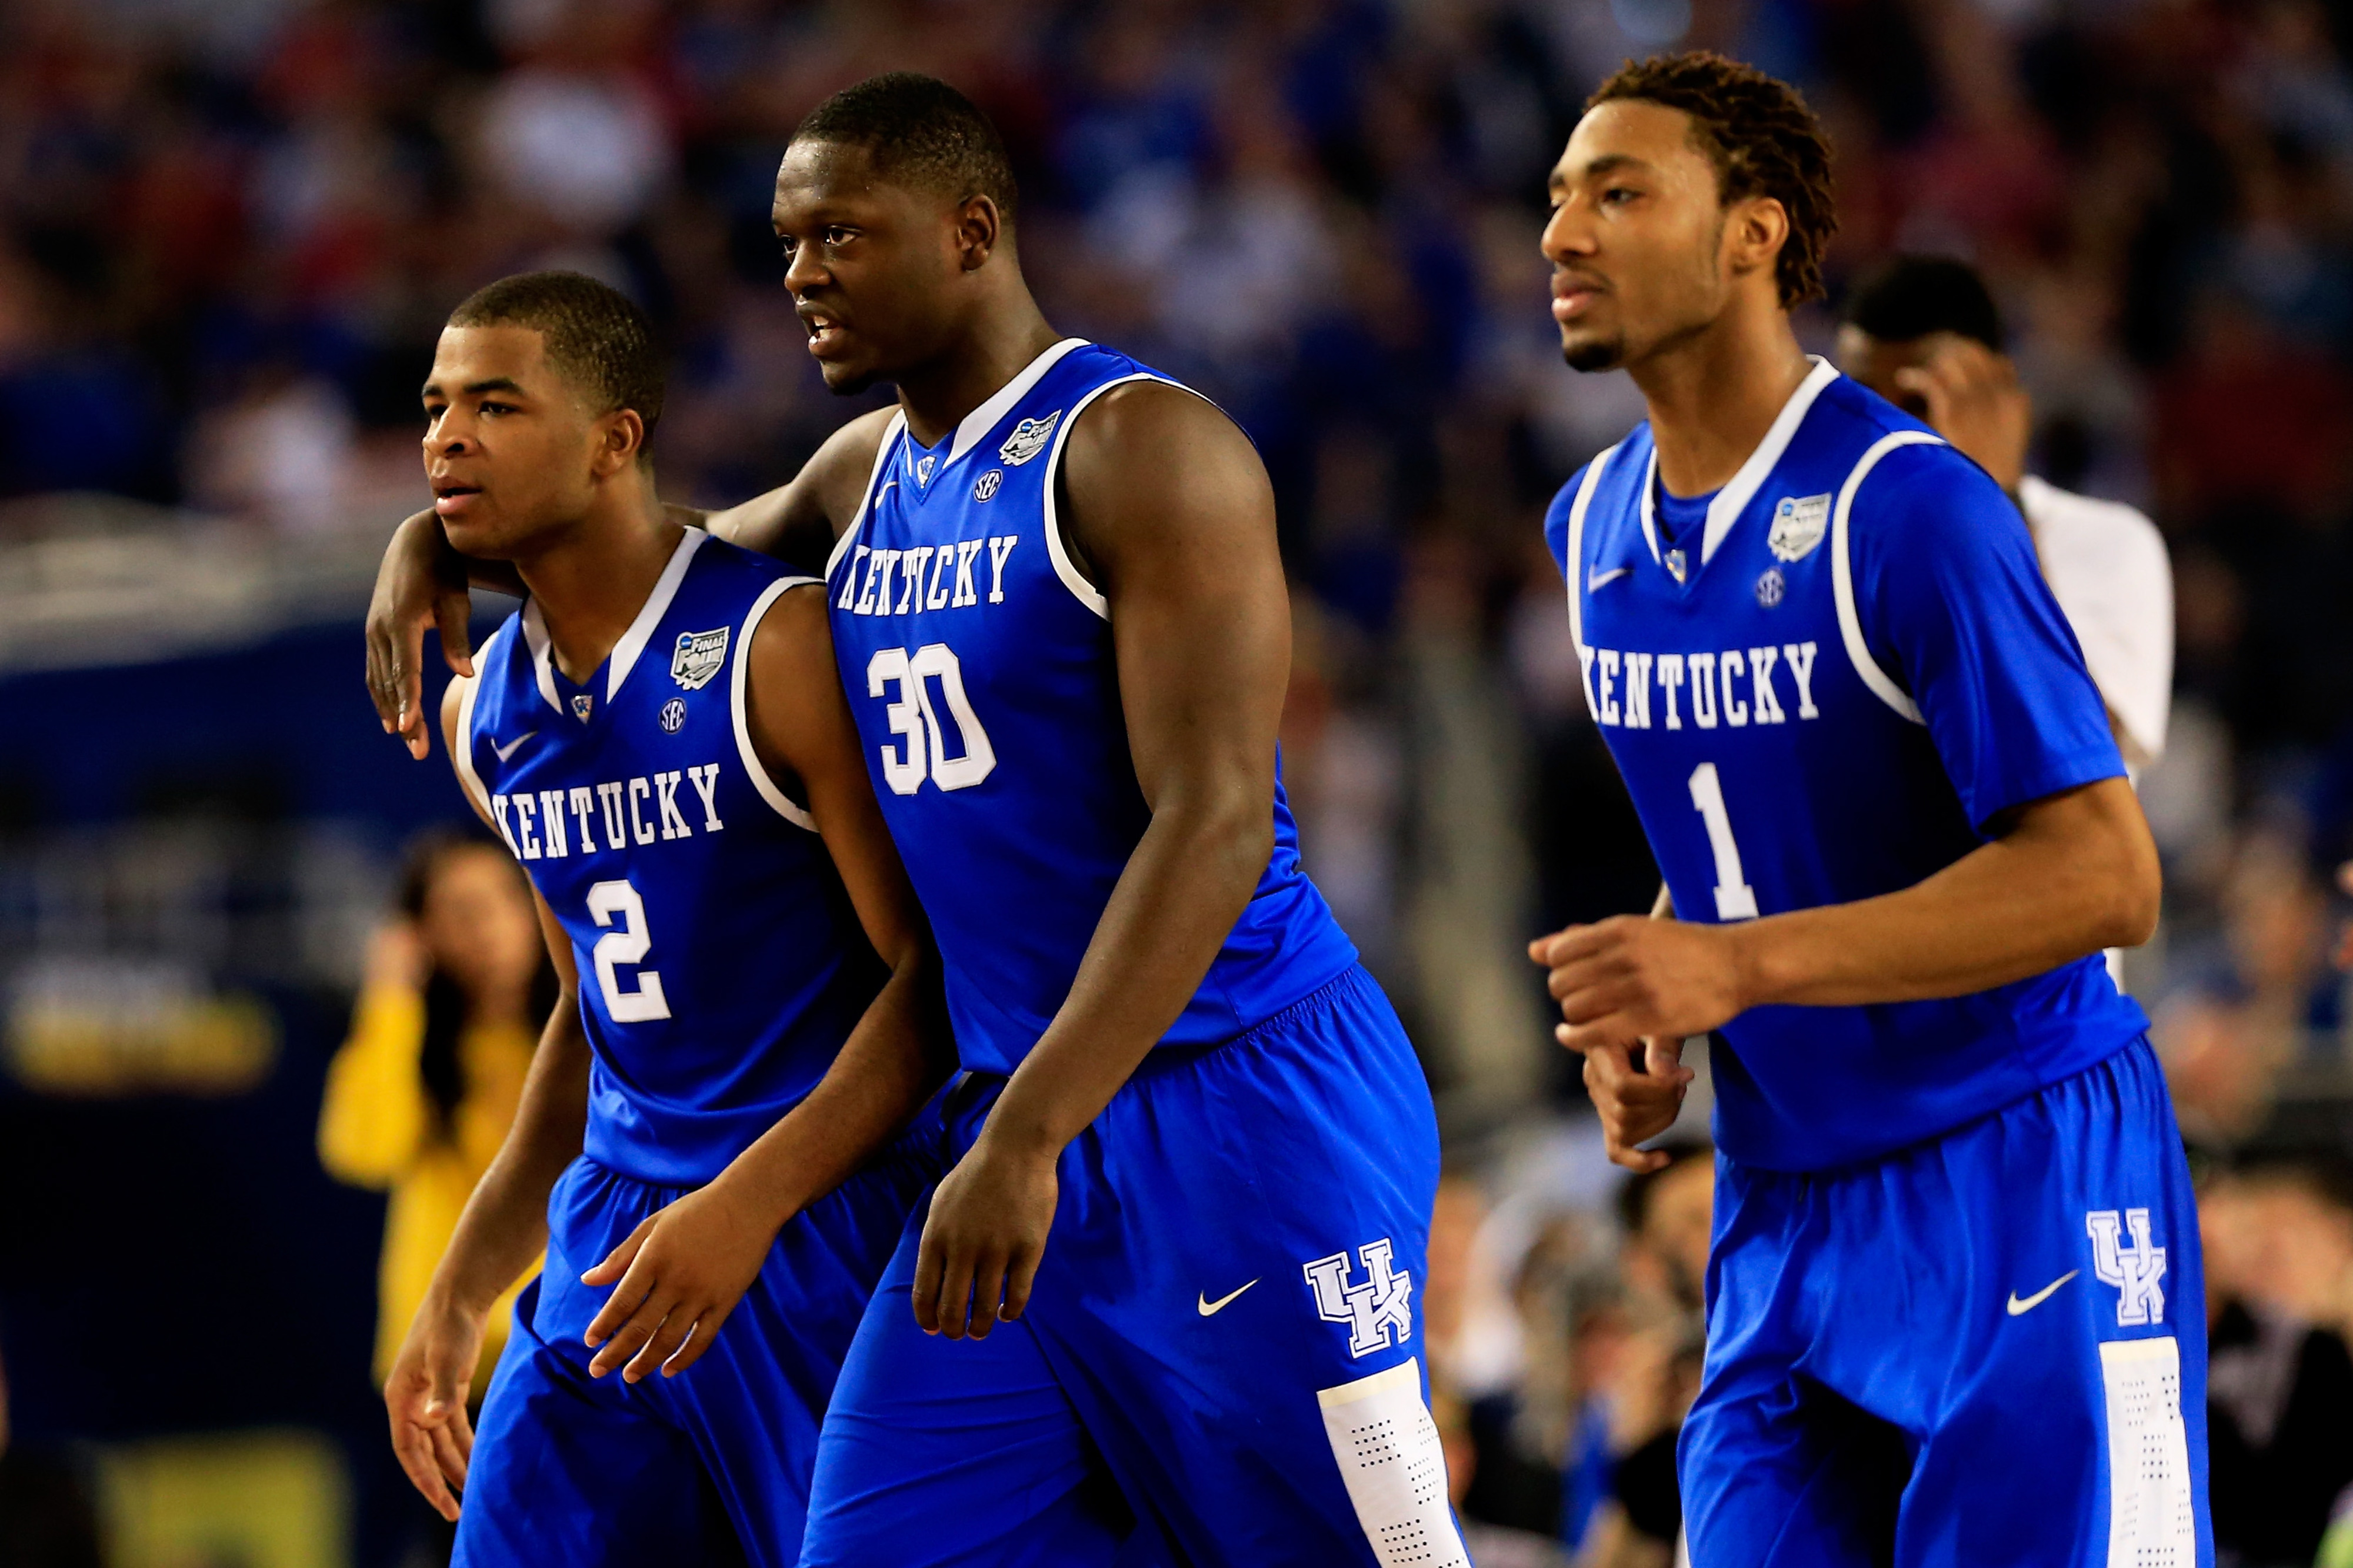 Kentucky prospects will make NBA Draft decisions later